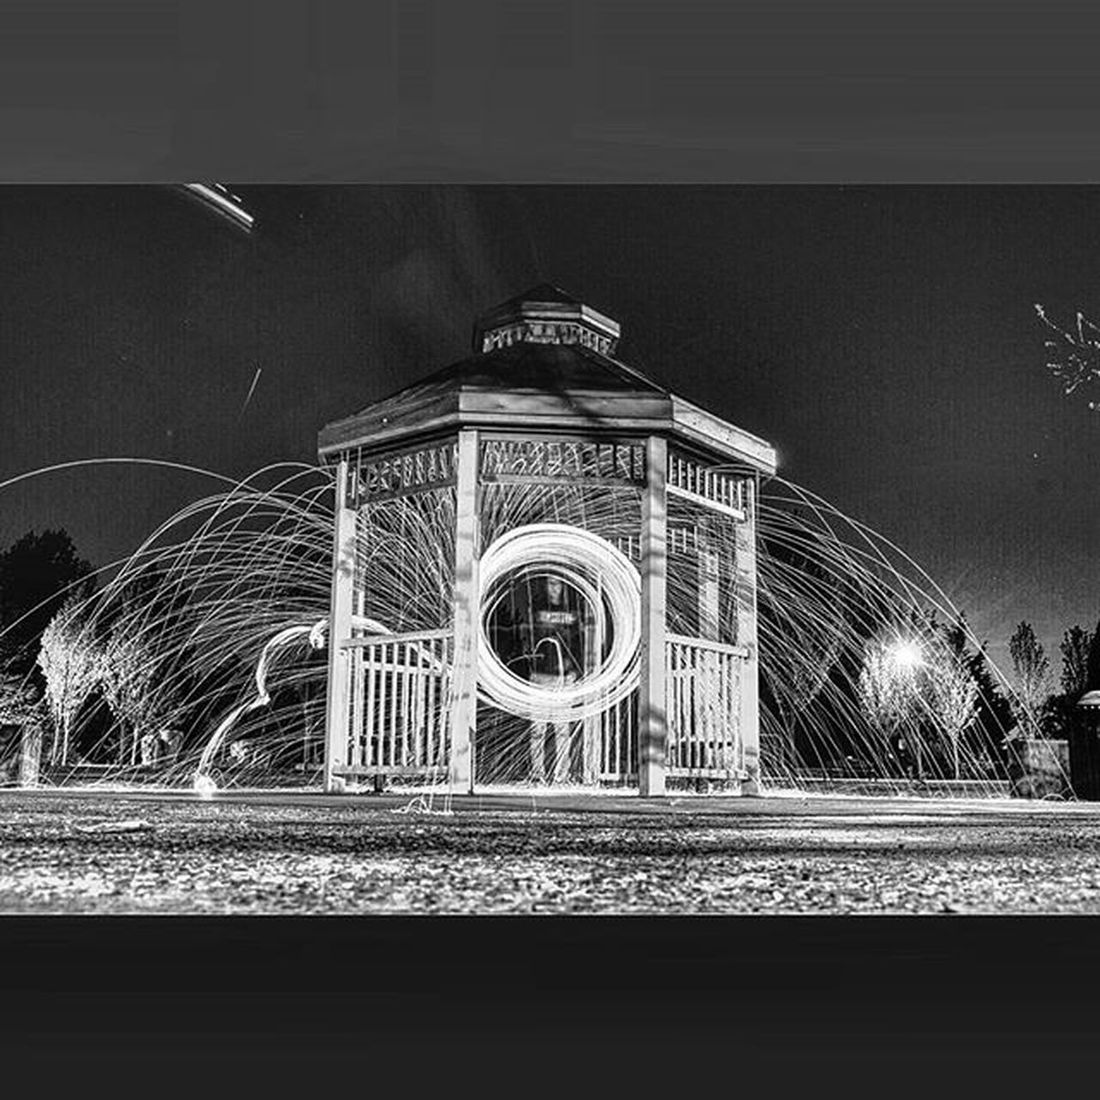 You wander around aimlessly and light things on fire at 2am because you have no friends Nofriends SoAlone Steelwool Idroppedit Washington Wedgepark Longexposure Gazebo Lightwriting Photography Nikon D3200